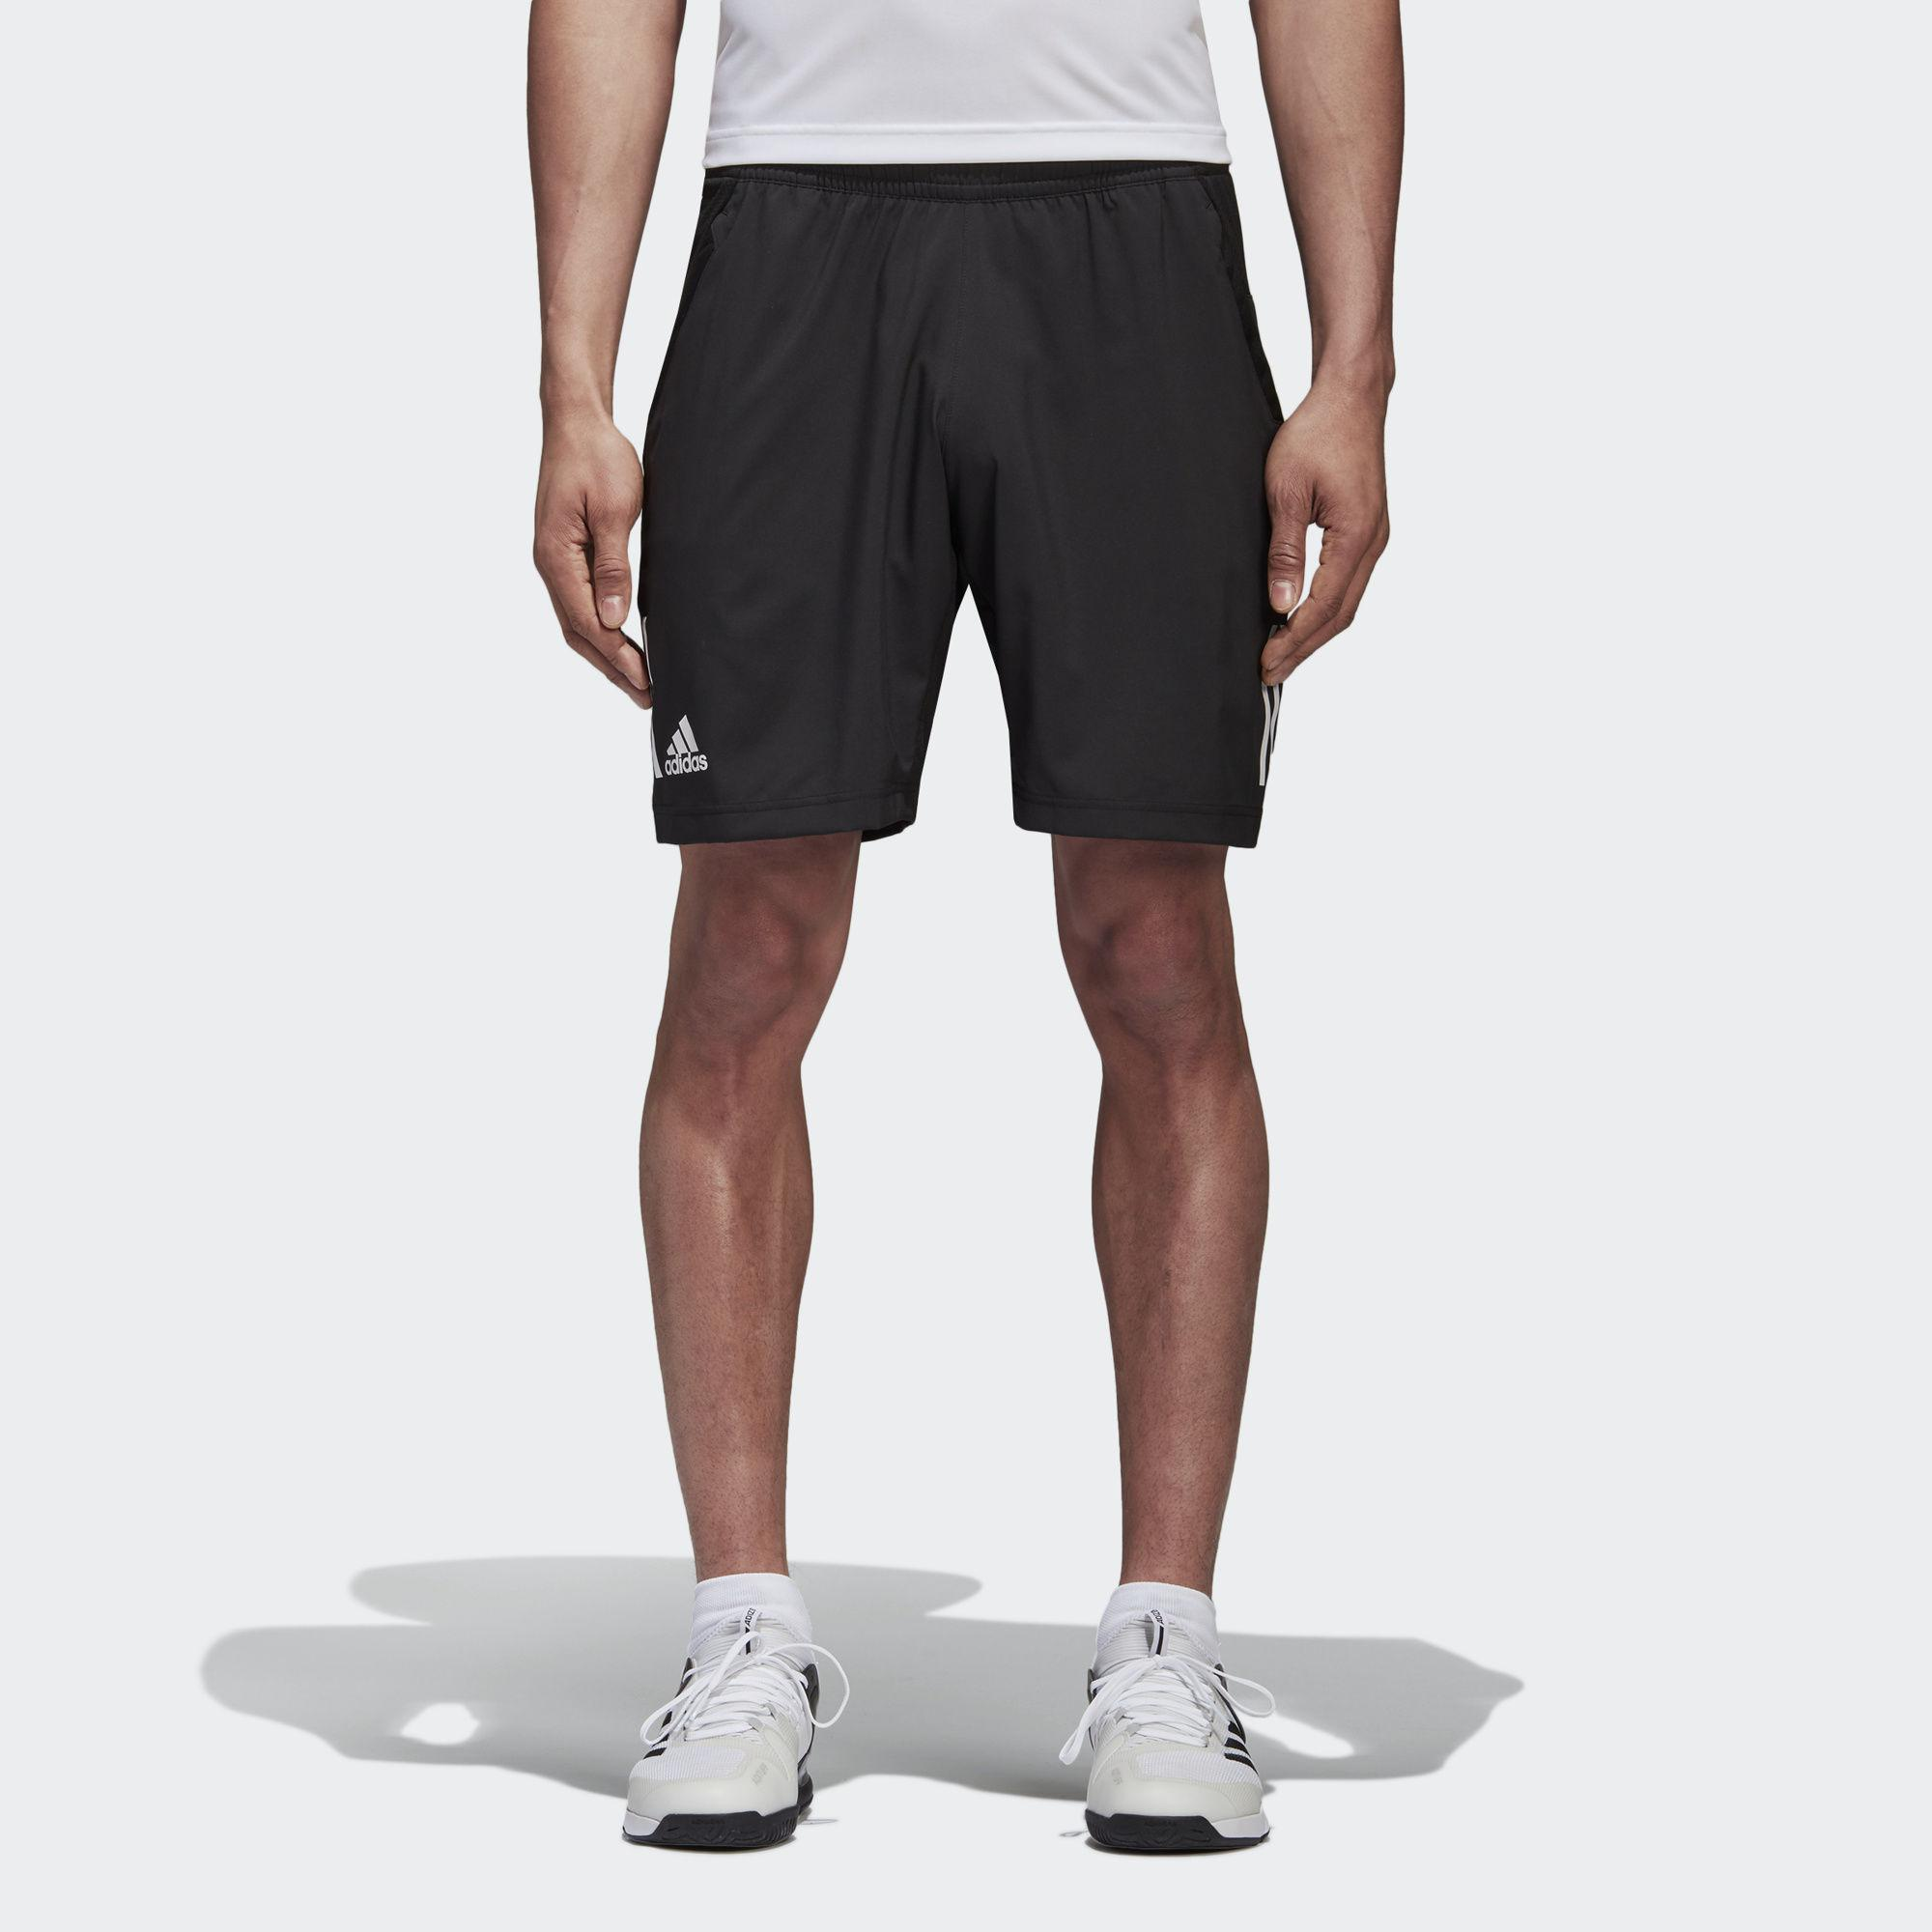 Adidas Mens Club Tennis Shorts - Black - Tennisnuts.com